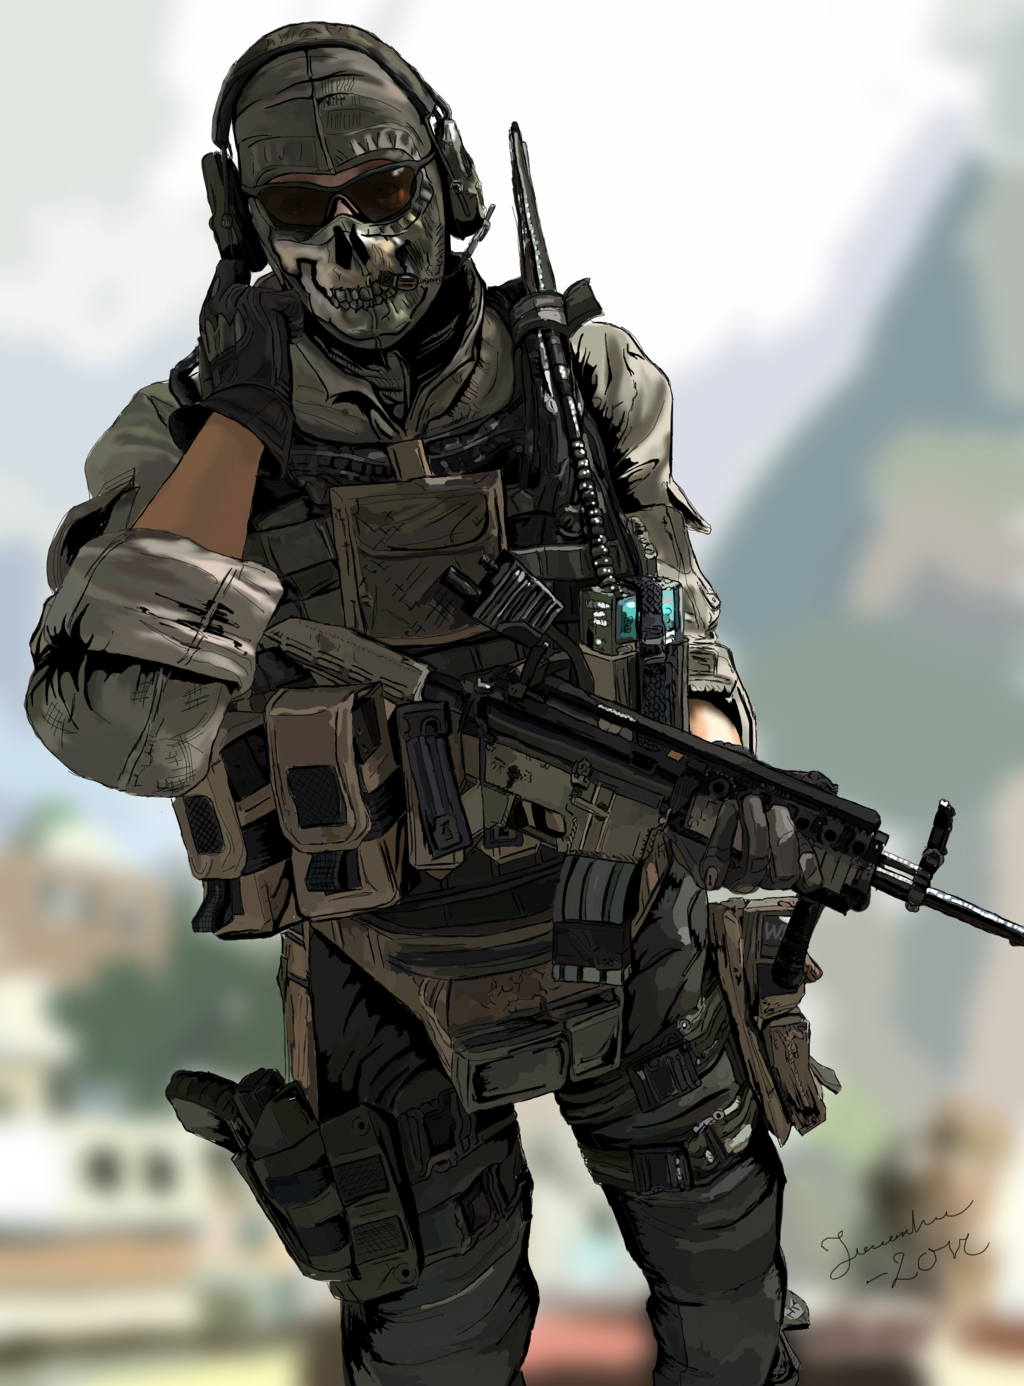 Pin By Aj On Jason Statham My Man Call Of Duty Call Of Duty Ghosts Military Wallpaper